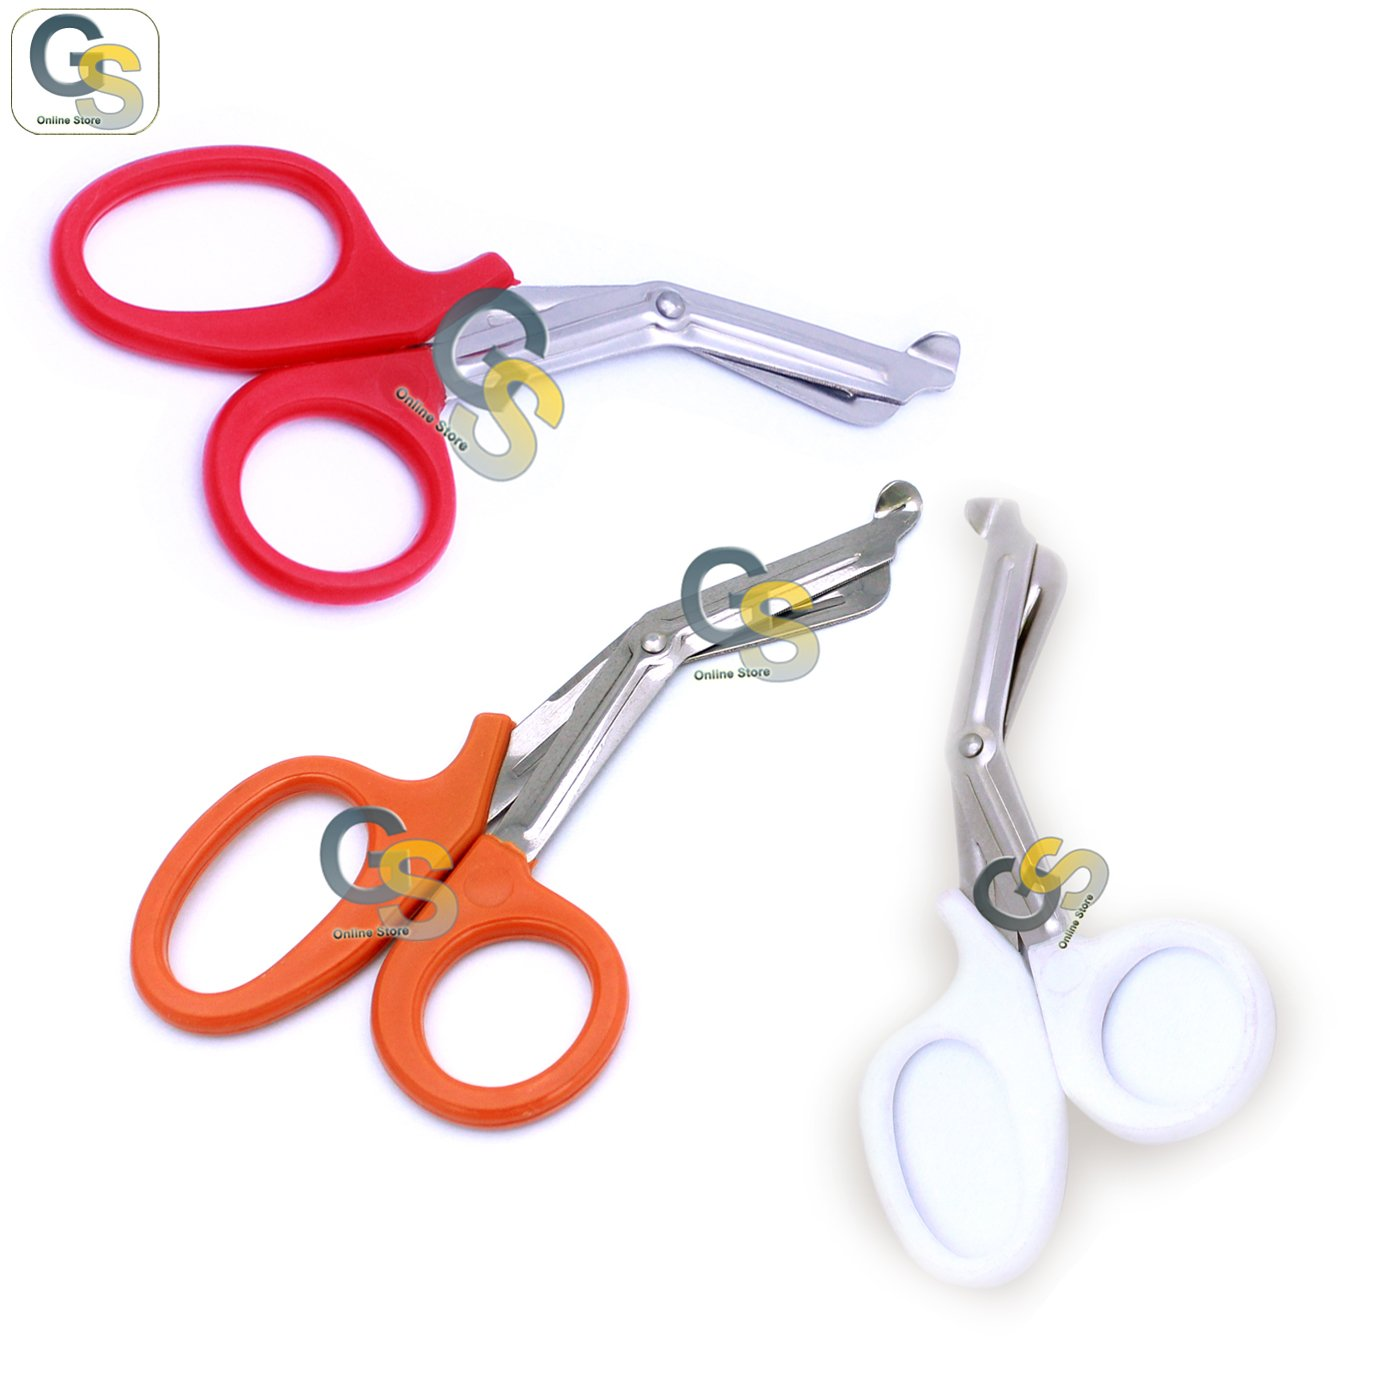 G.S 3 PCS (RED & NEON ORANGE & WHITE) PARAMEDIC UTILITY BANDAGE TRAUMA EMT EMS SHEARS SCISSORS 7.25 INCH STAINLESS STEEL